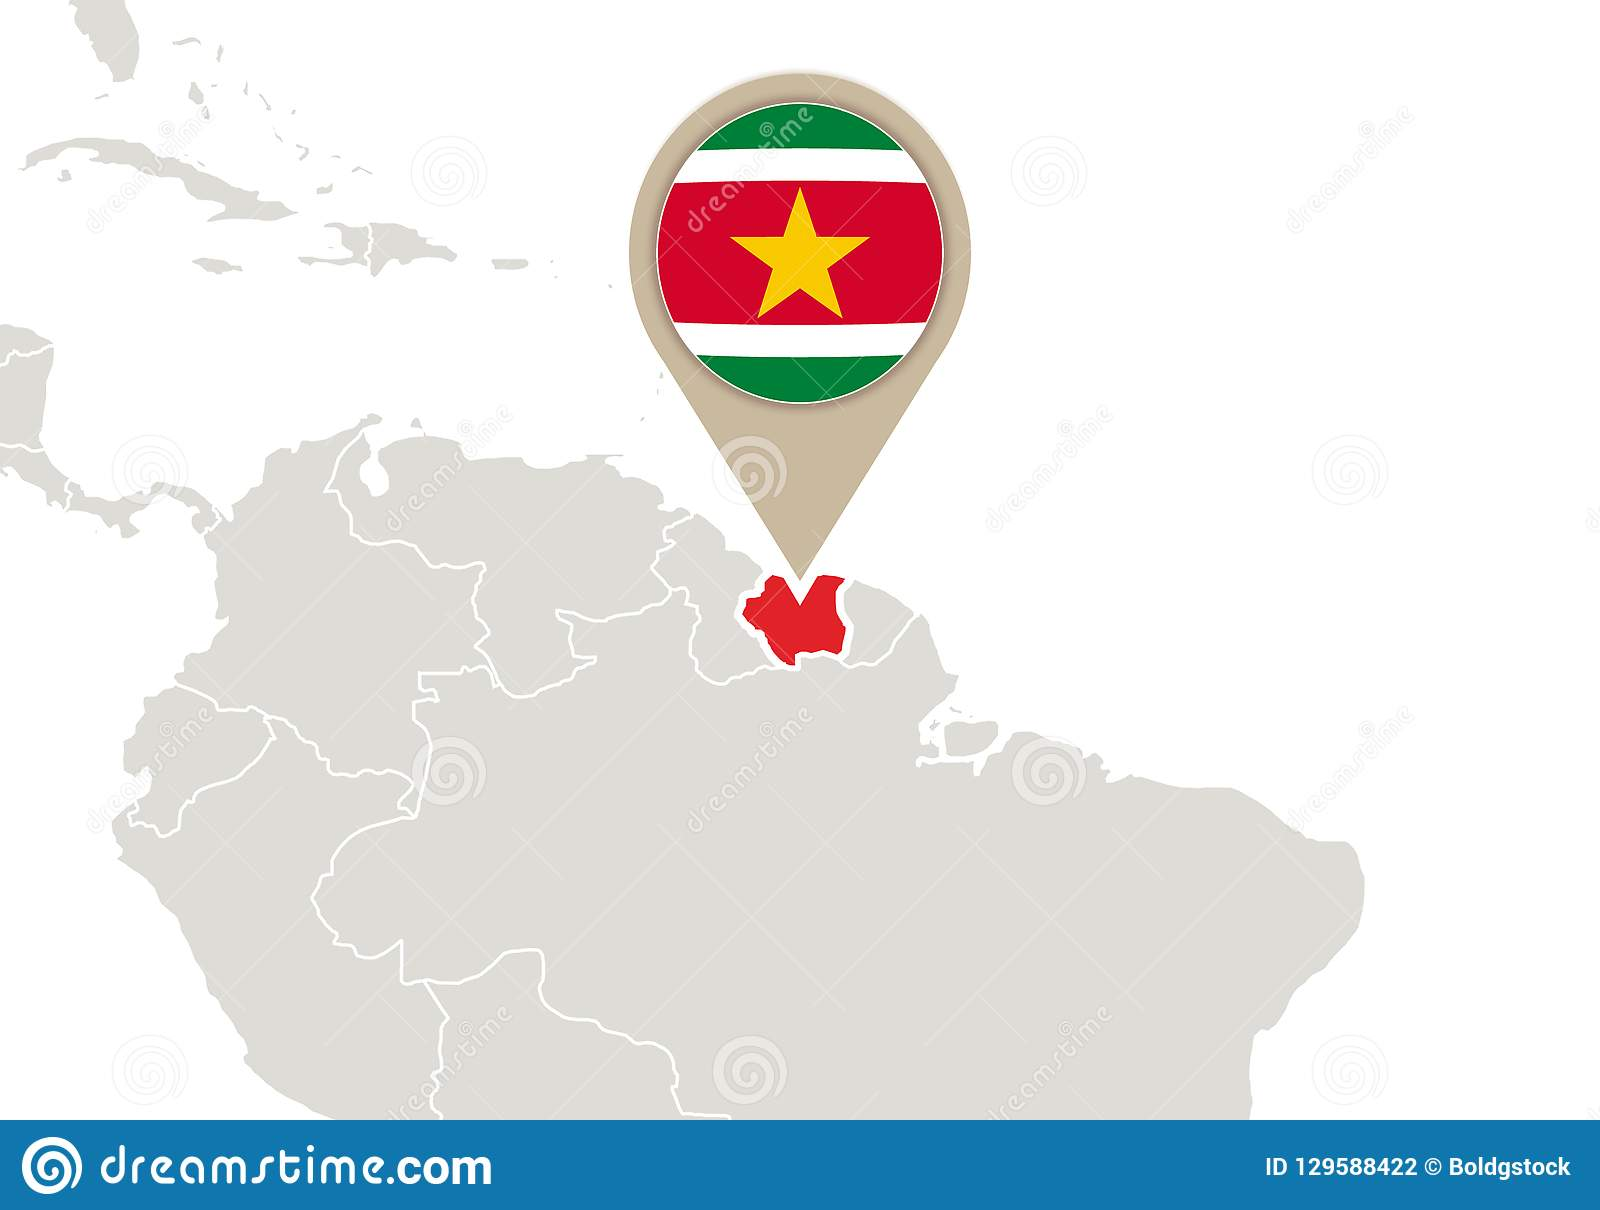 Suriname On World Map Stock Vector Illustration Of Suriname 129588422